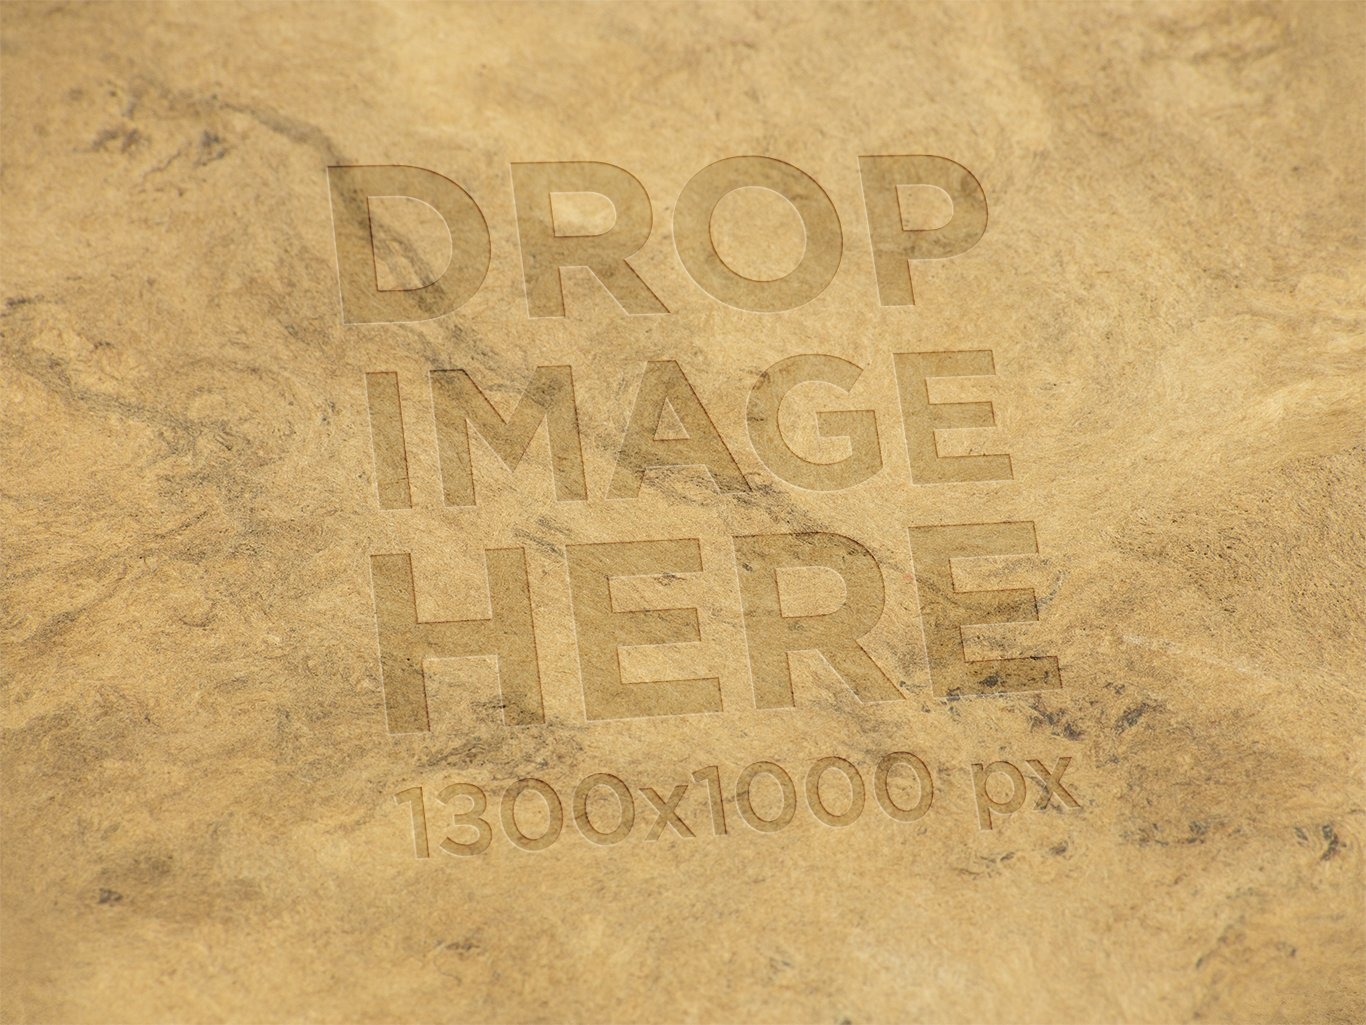 LOGO TEMPLATE ON A RECYCLED BROWN PAPER TEXTURE